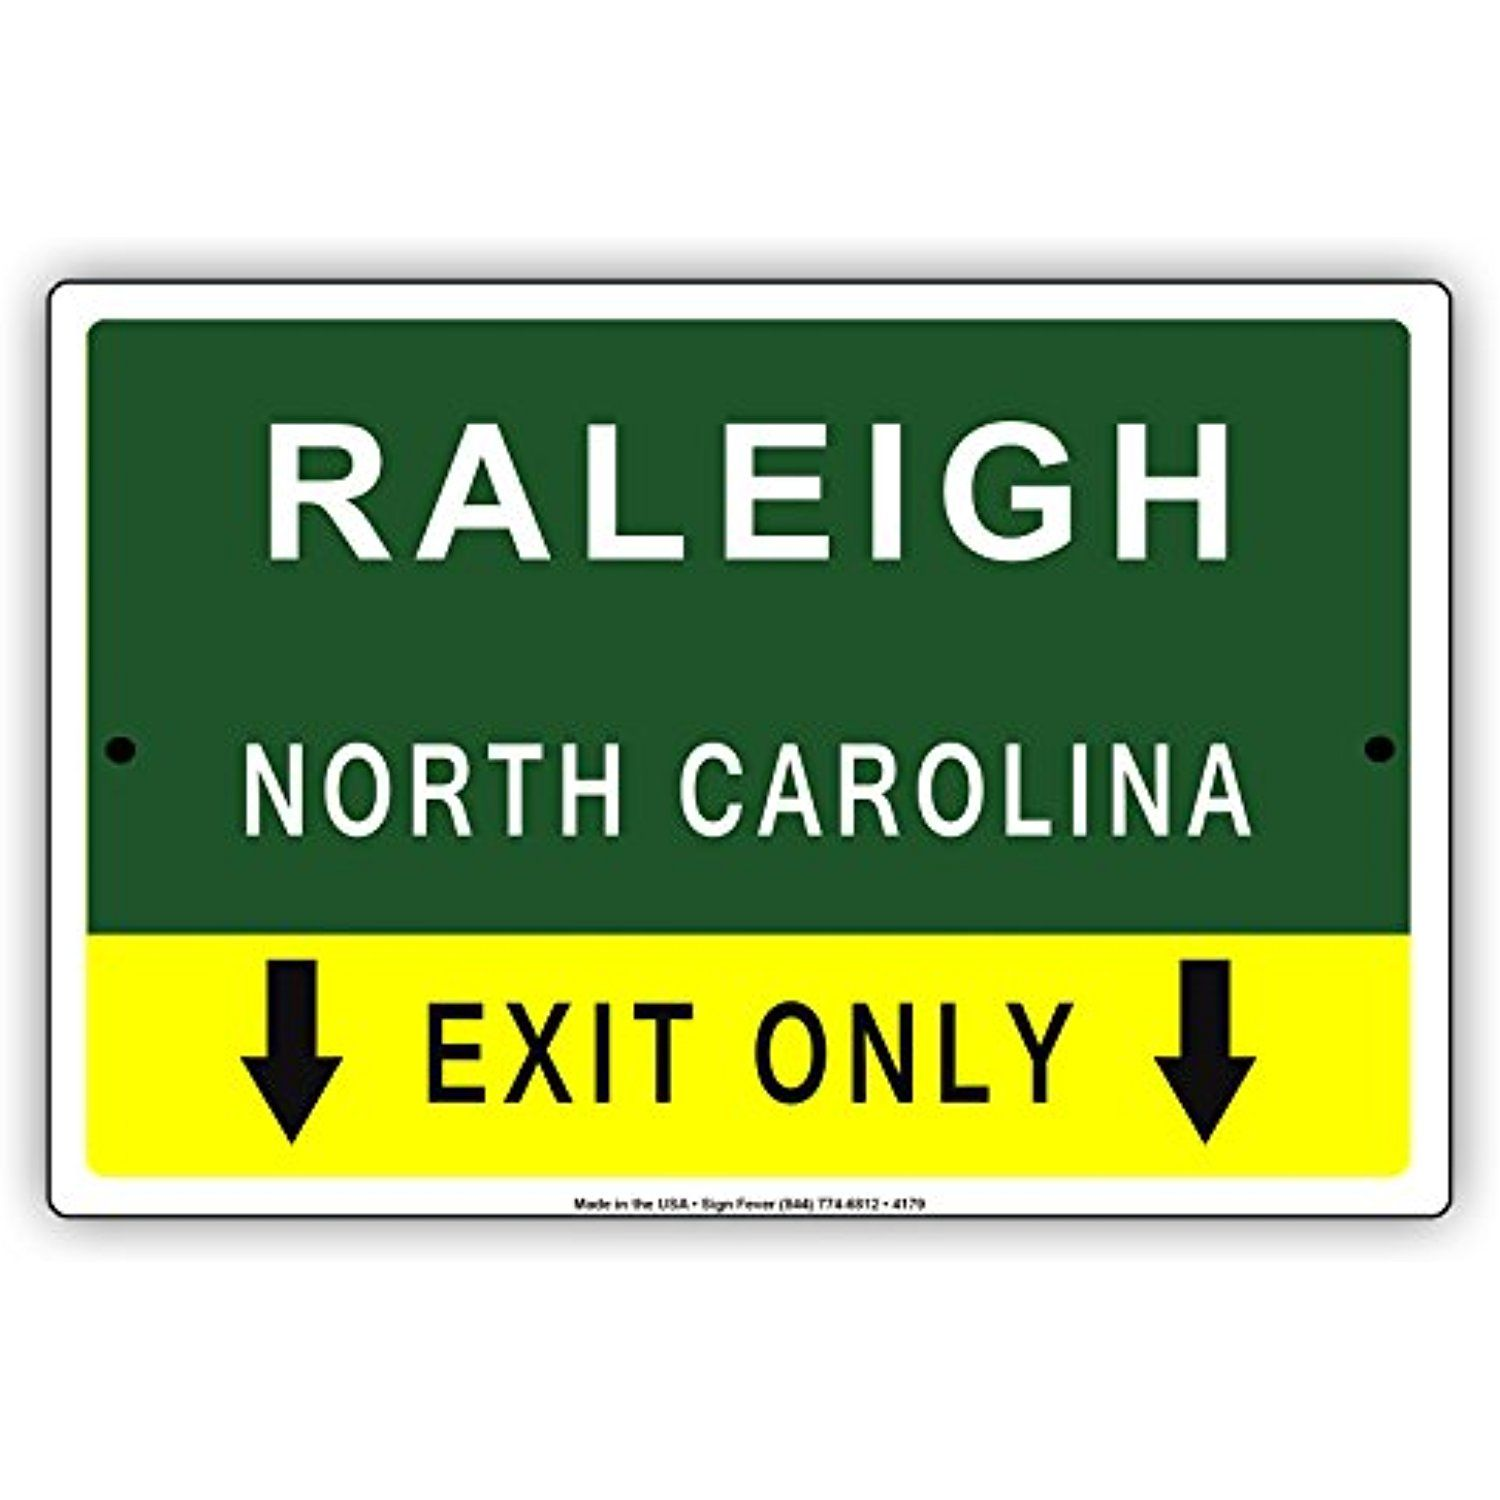 Raleigh North Carolina Exit Only With Pointer Arrow Direction Way Road Signs Alert Caution Warning Aluminum Me Decorative Signs Raleigh North Carolina